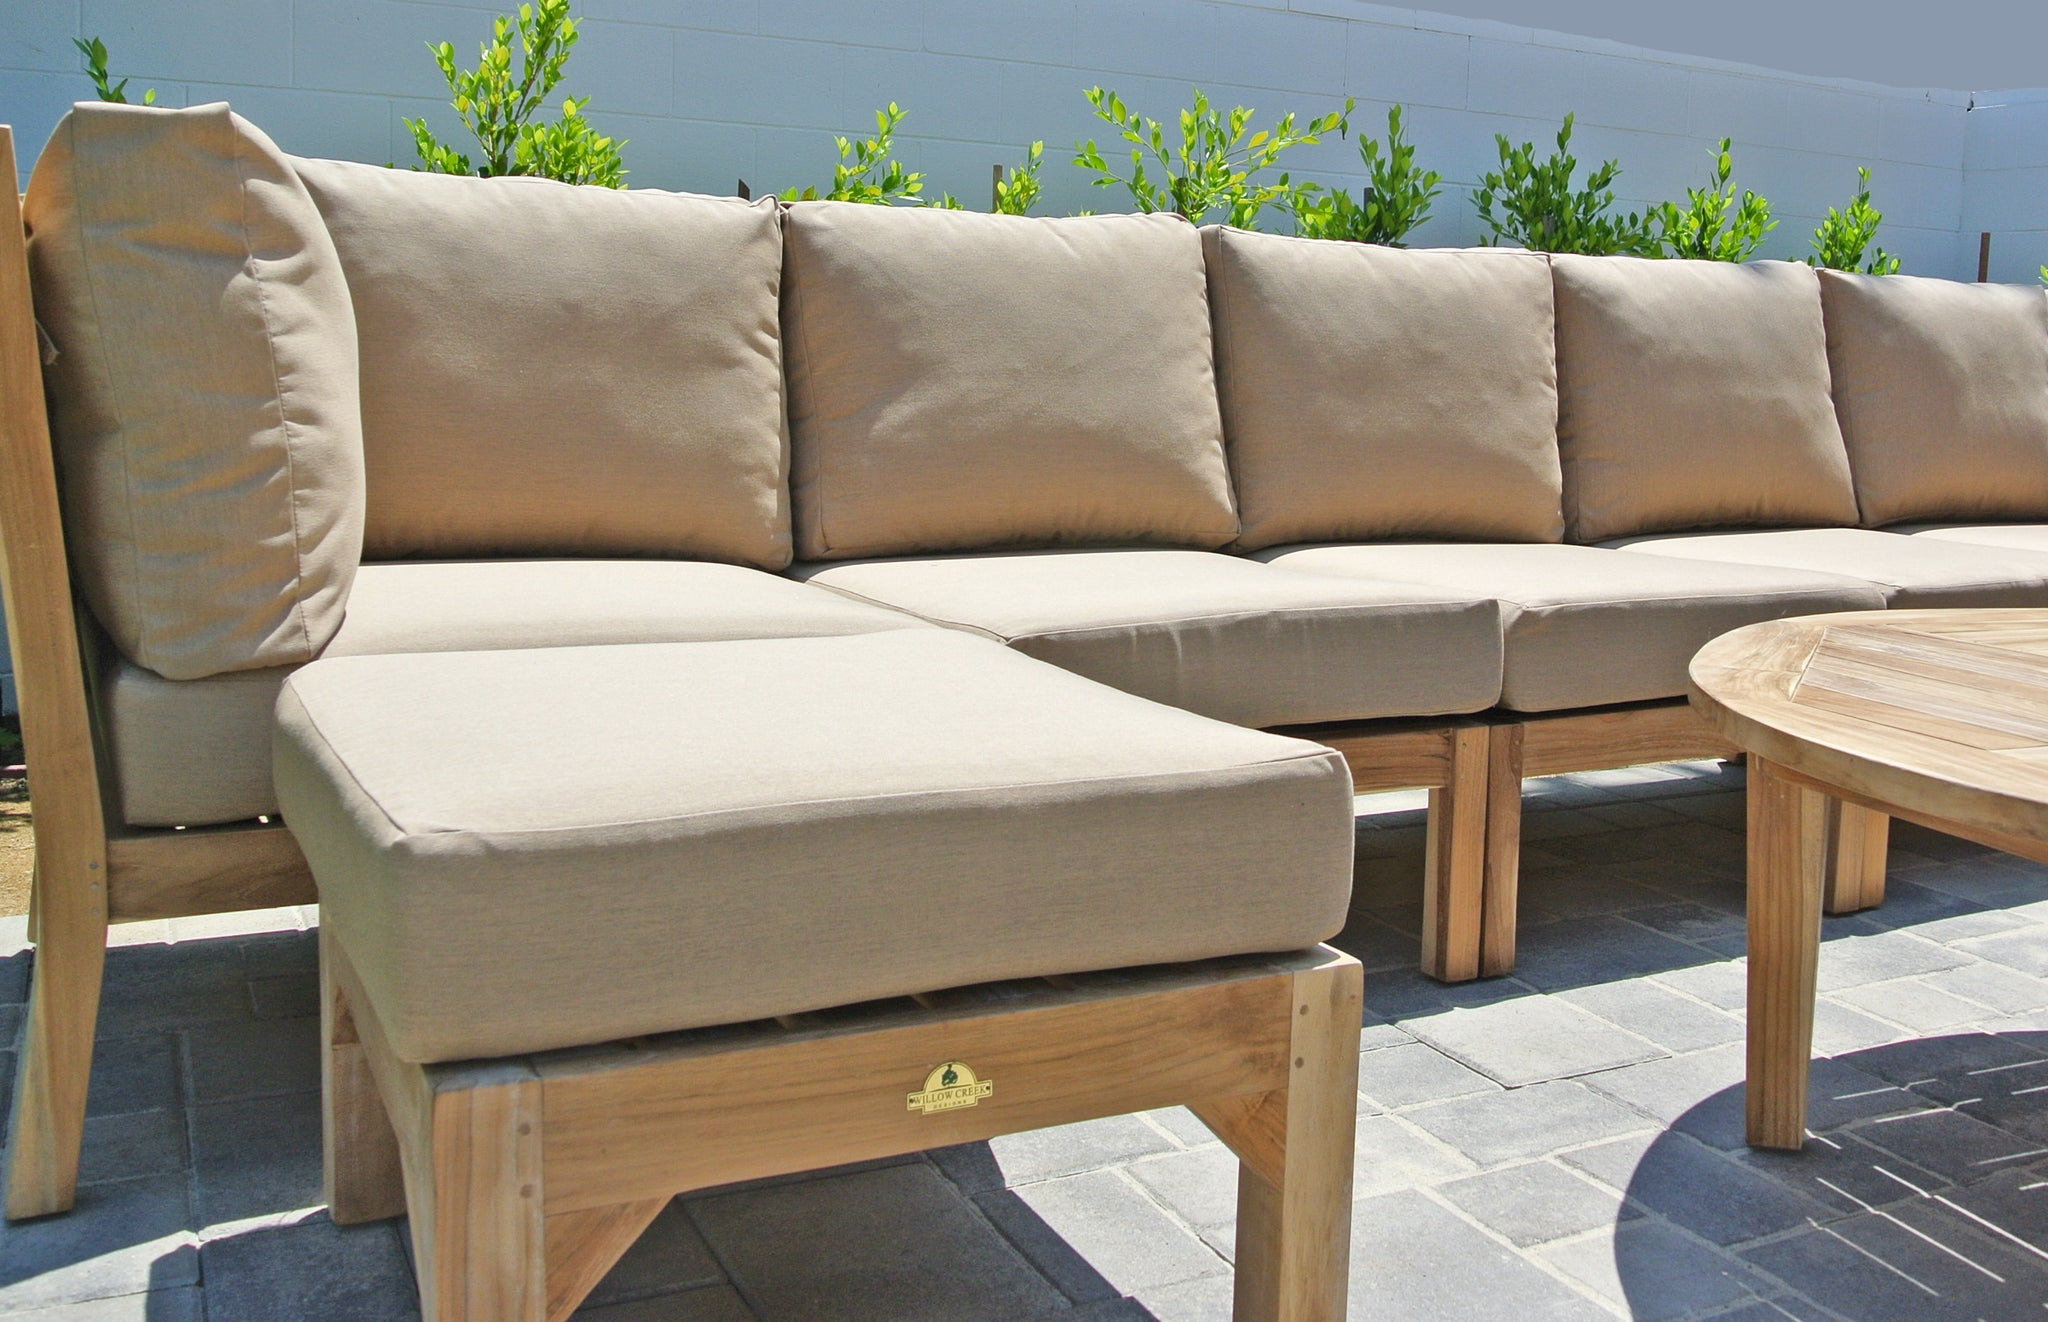 ... Outdoor Teak Deep Seating Sectional With Sunbrella Cushion ...